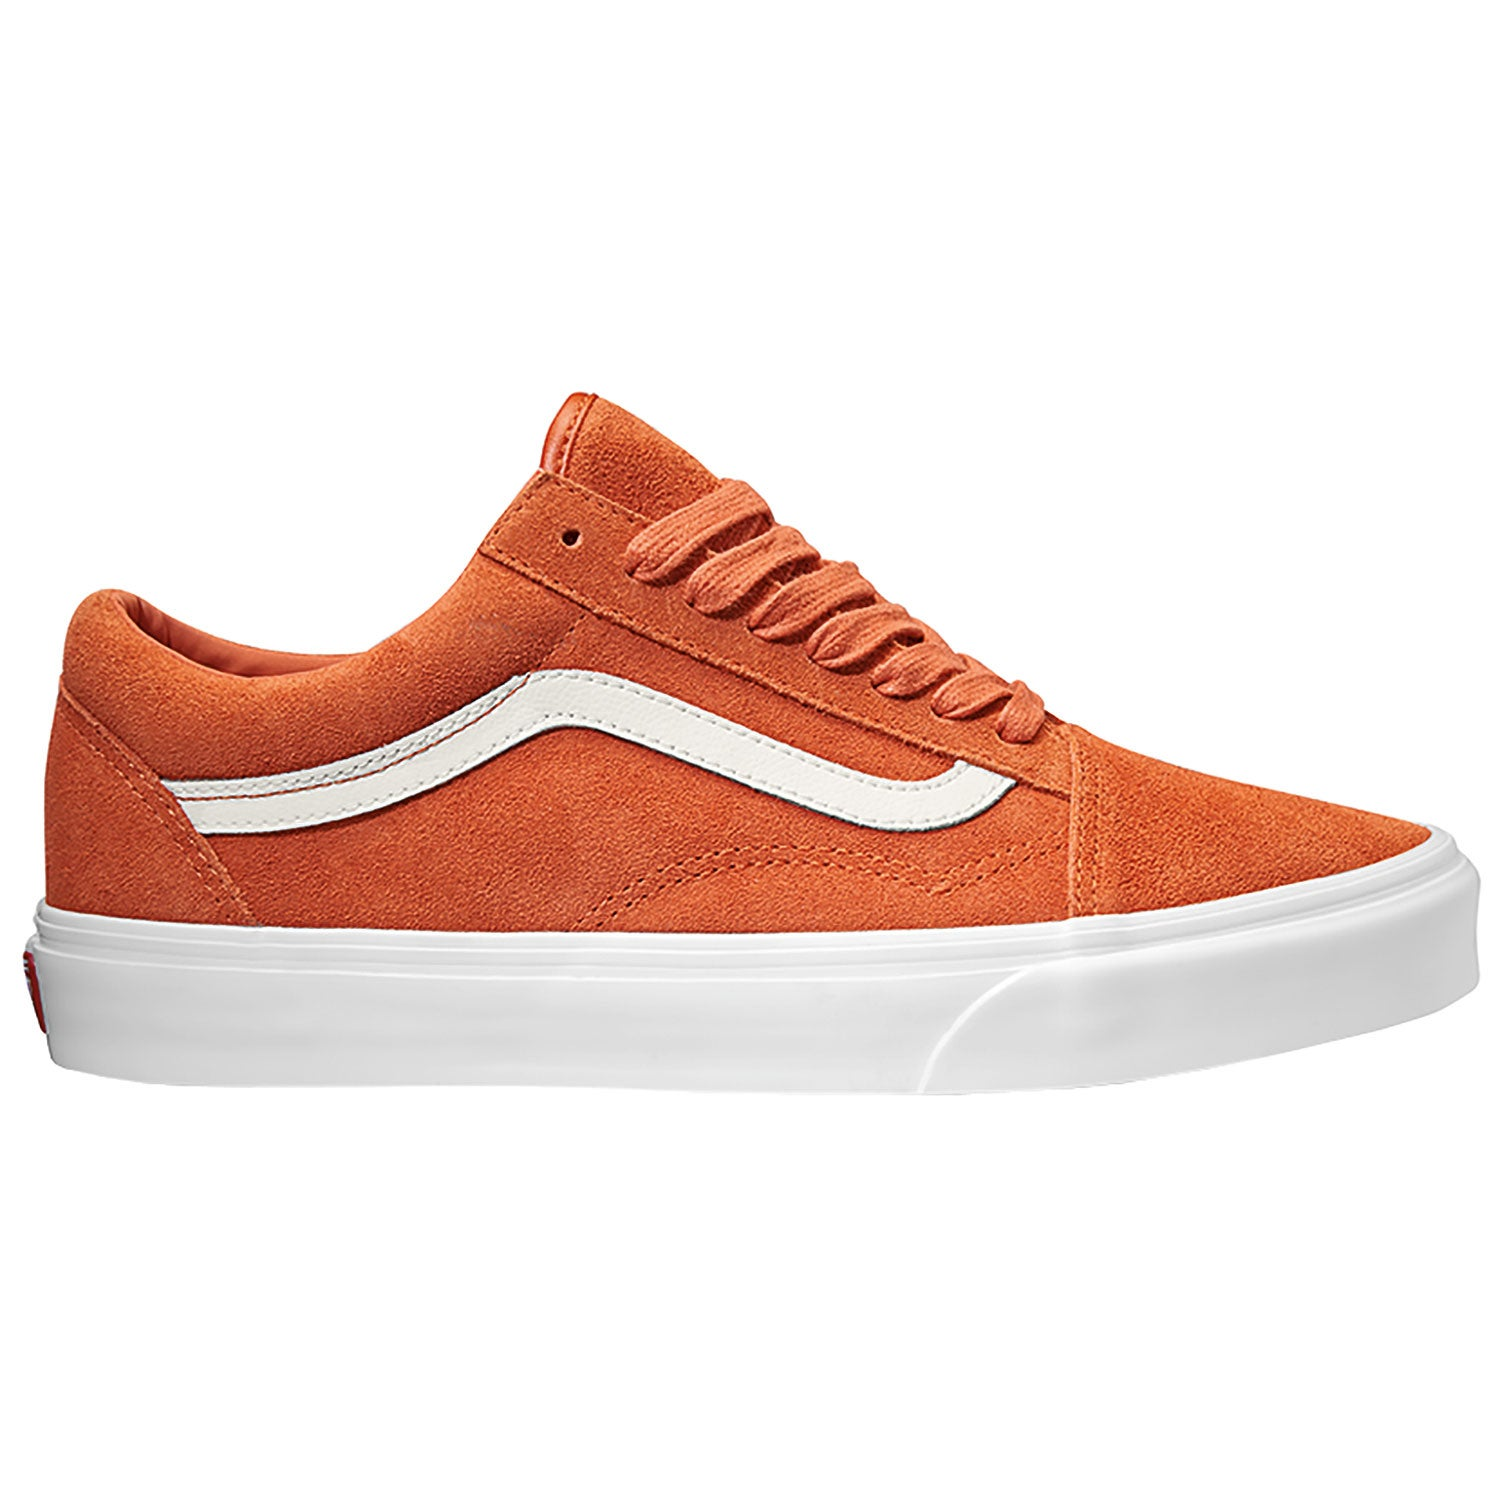 Sapatos Vans Old Skool